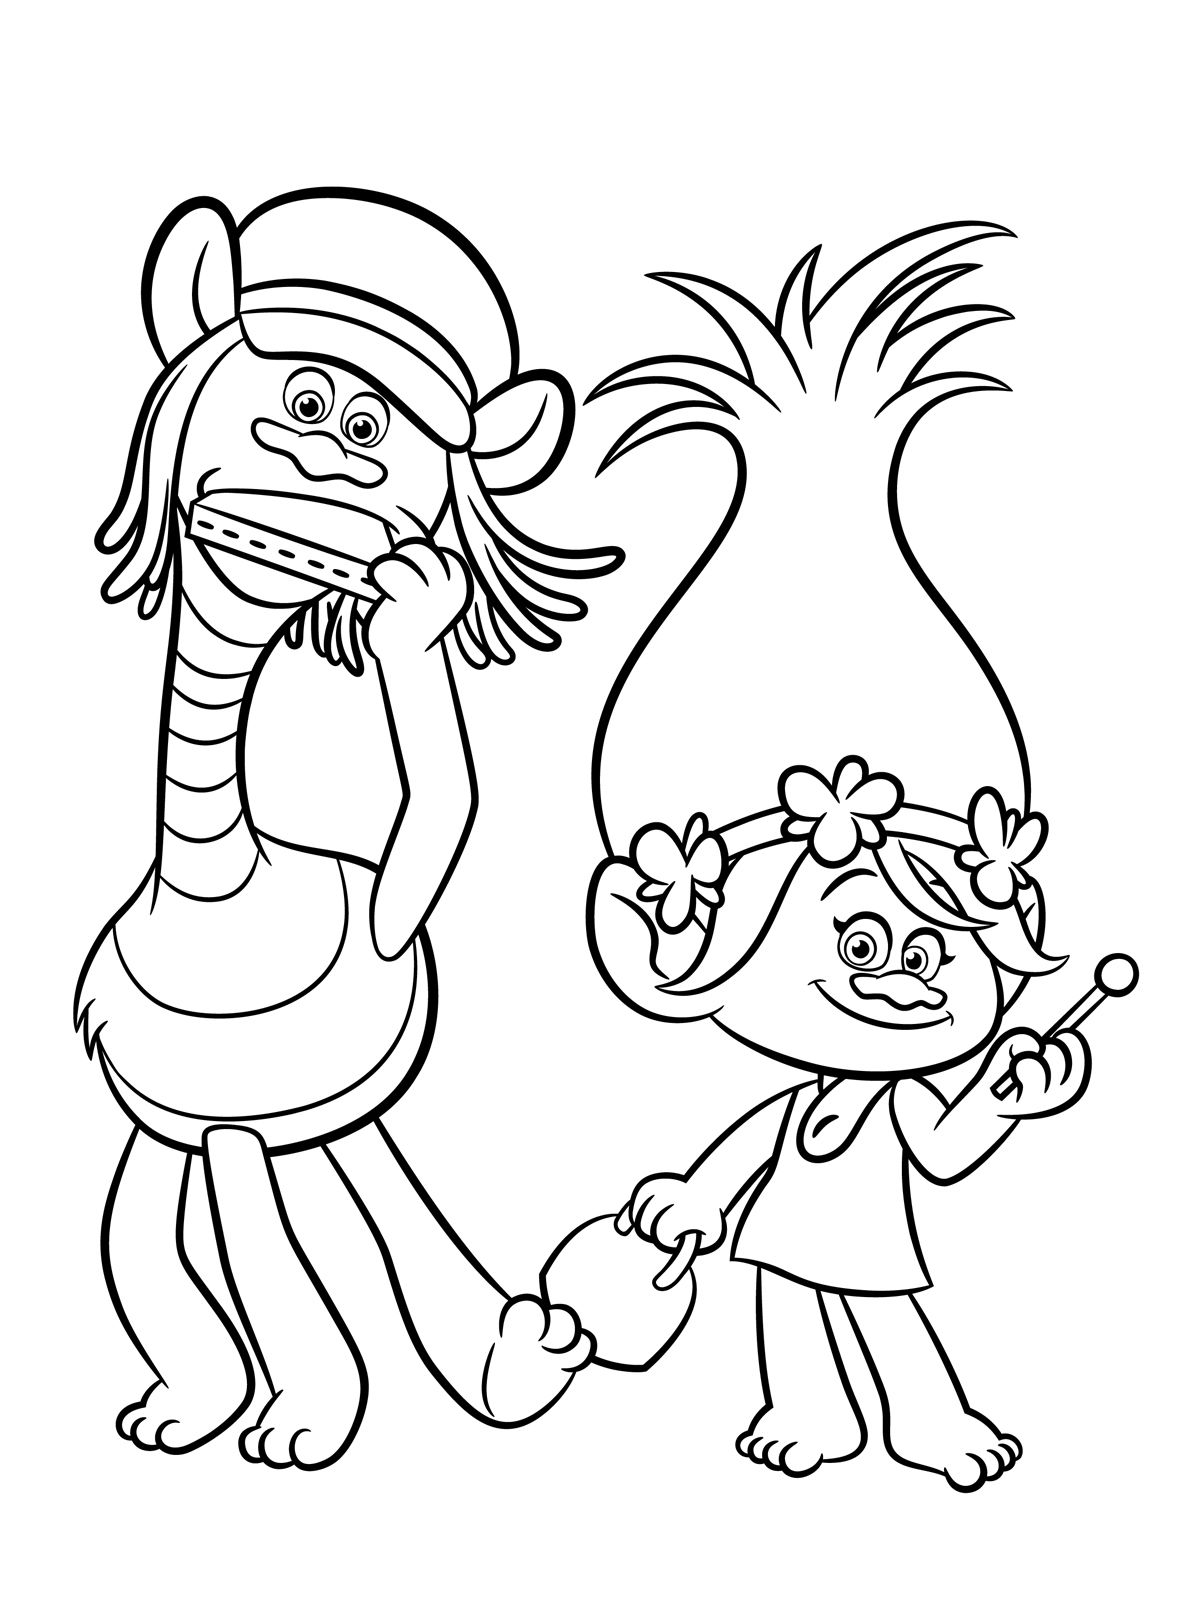 Trolls Coloring Pages To Download And Print For Free Cartoon